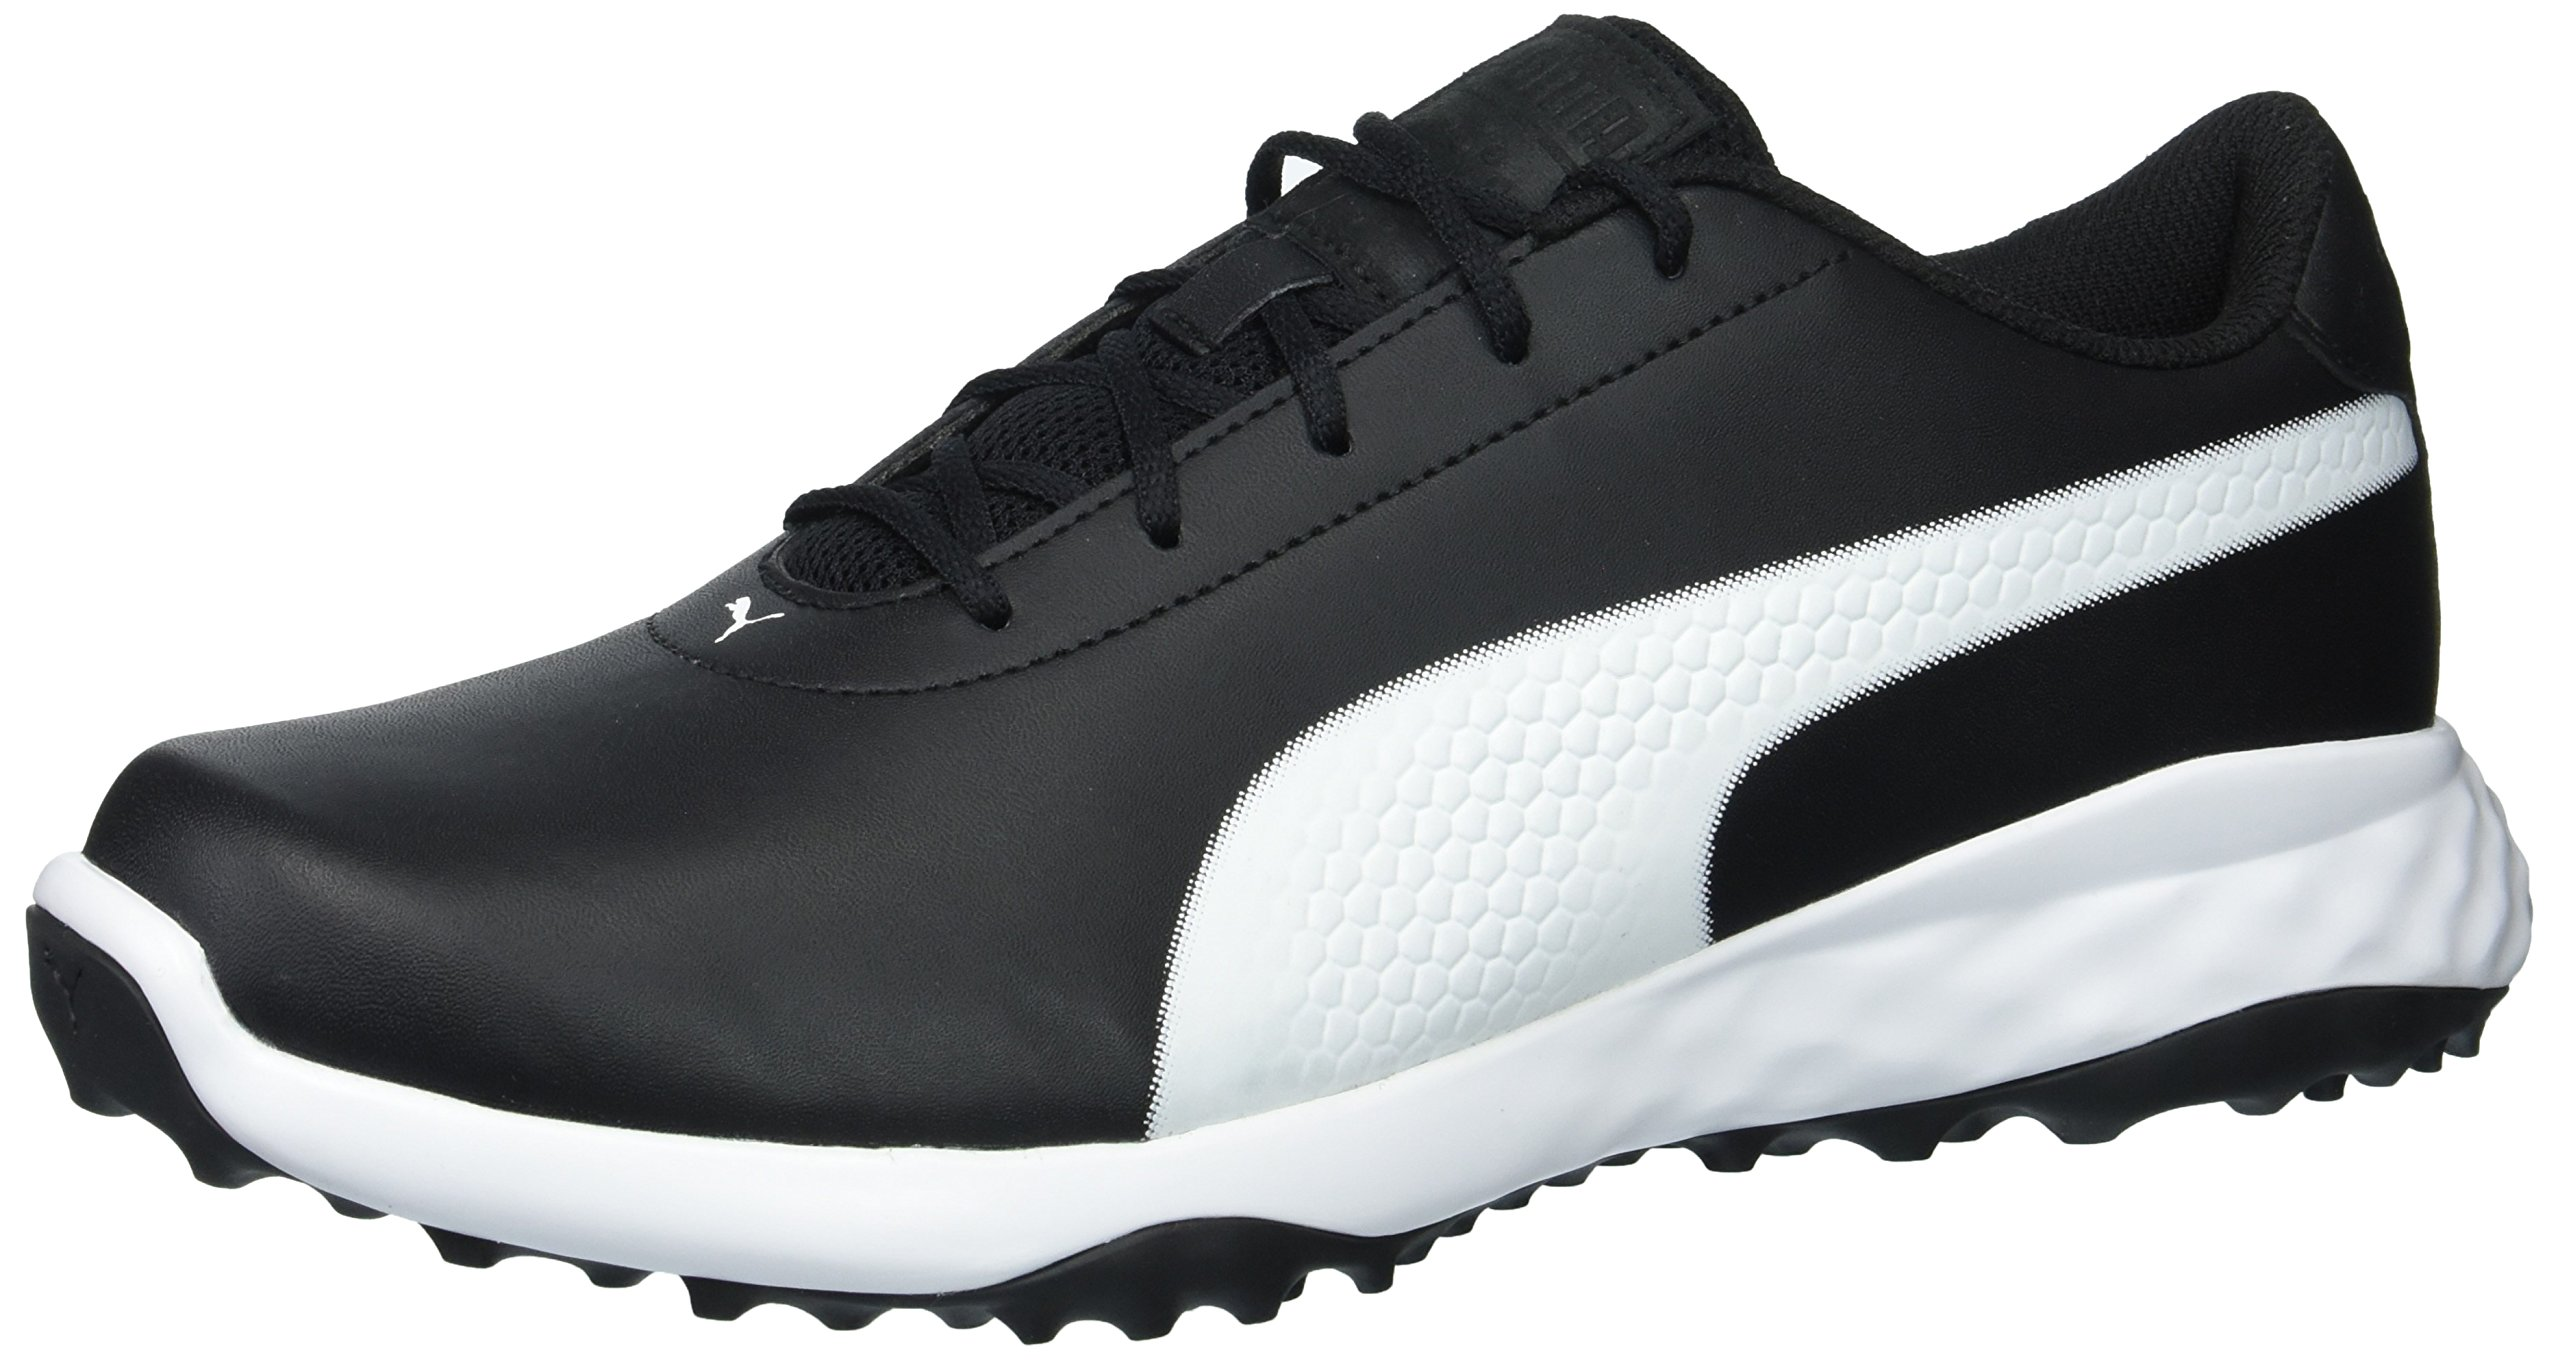 PUMA Golf Men's Grip Fusion Classic Golf Shoe, Black/White, 8.5 Medium US by PUMA